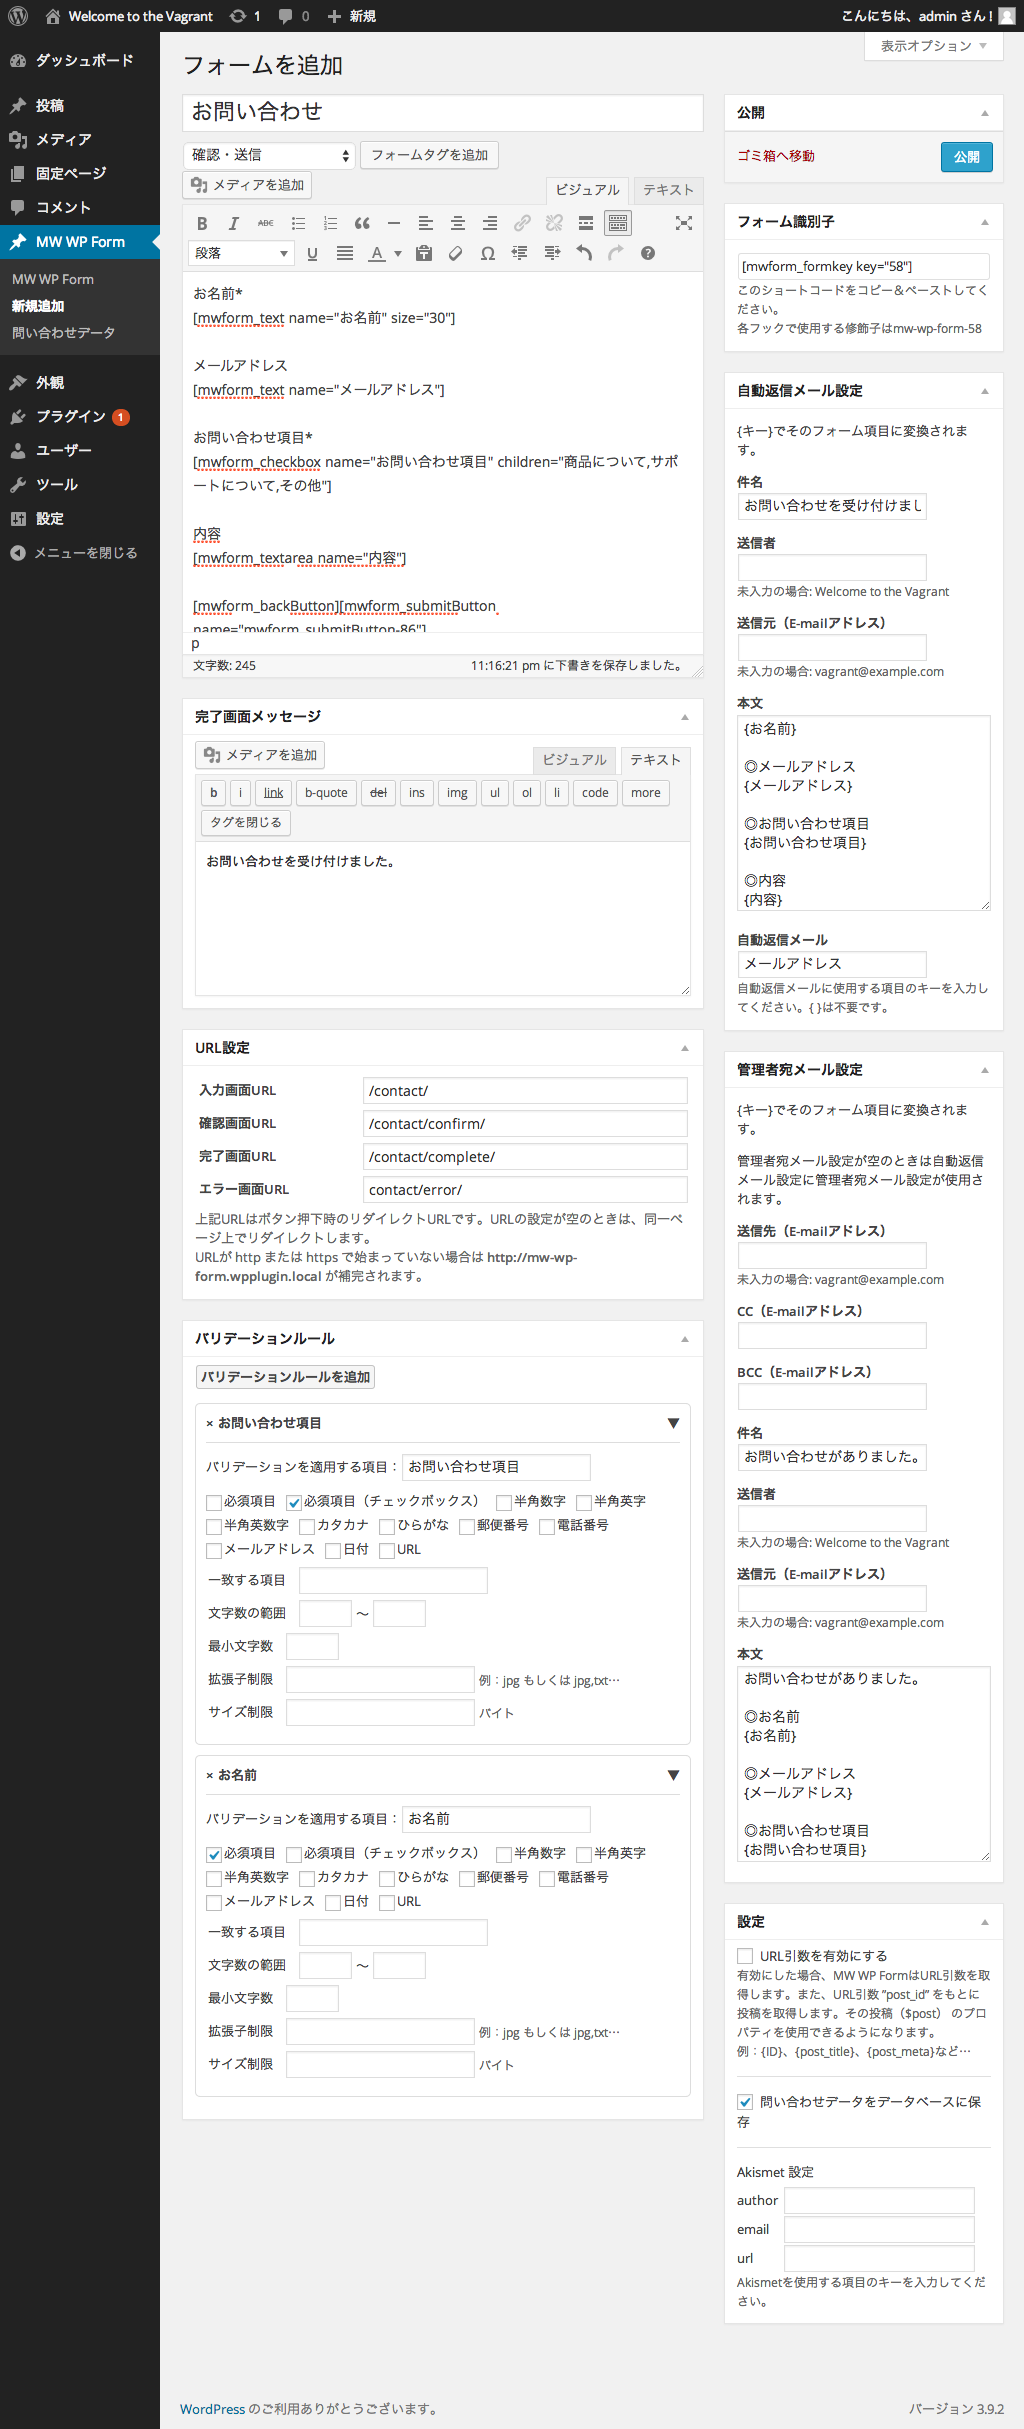 mw-wp-form screenshot 1